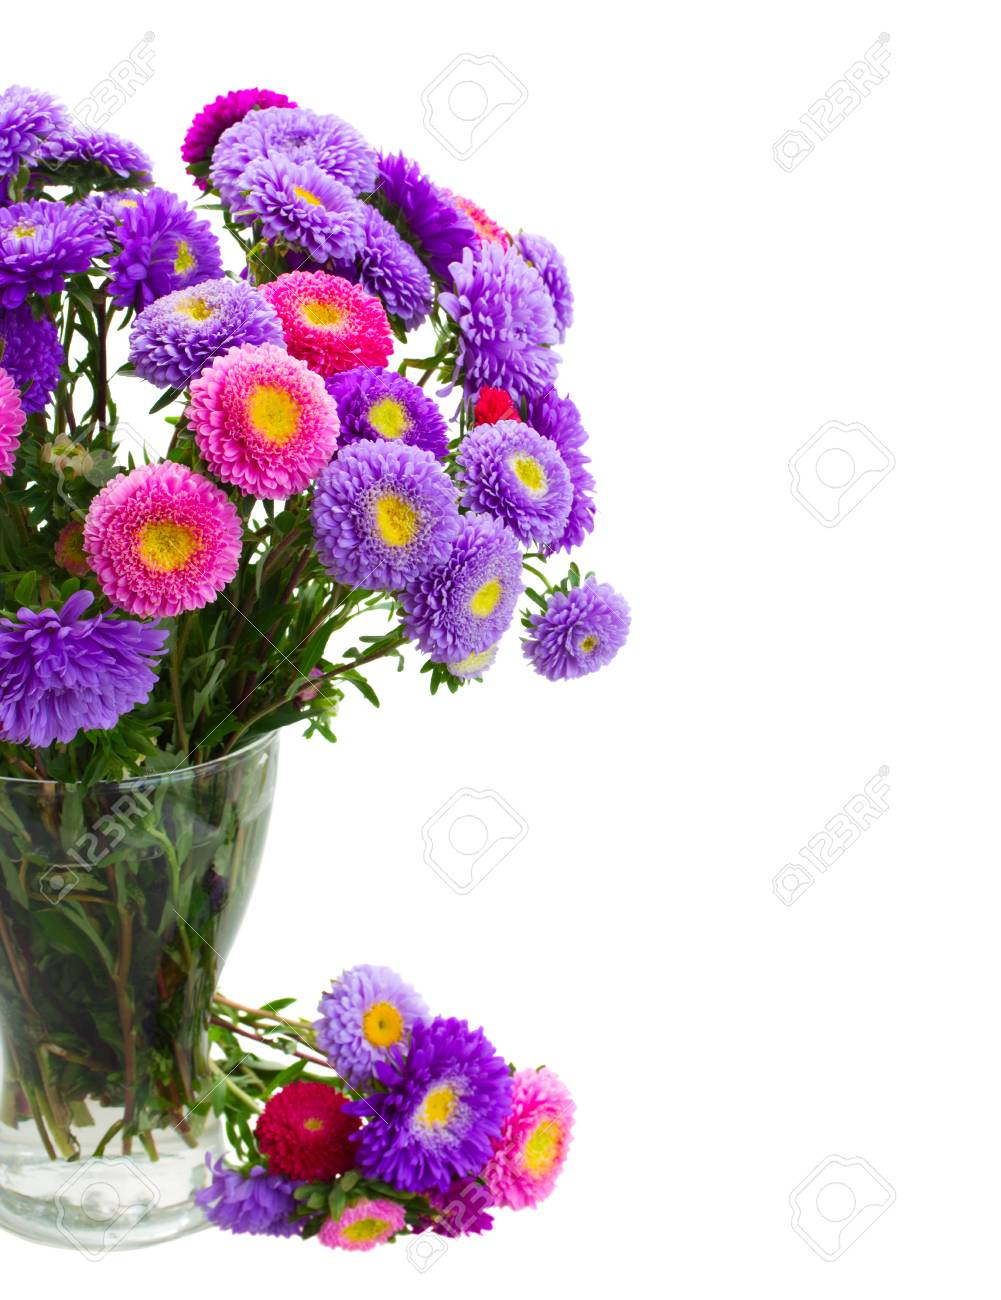 Fresh Aster Flowers Bouquet In Vase Close Up Isolated On White